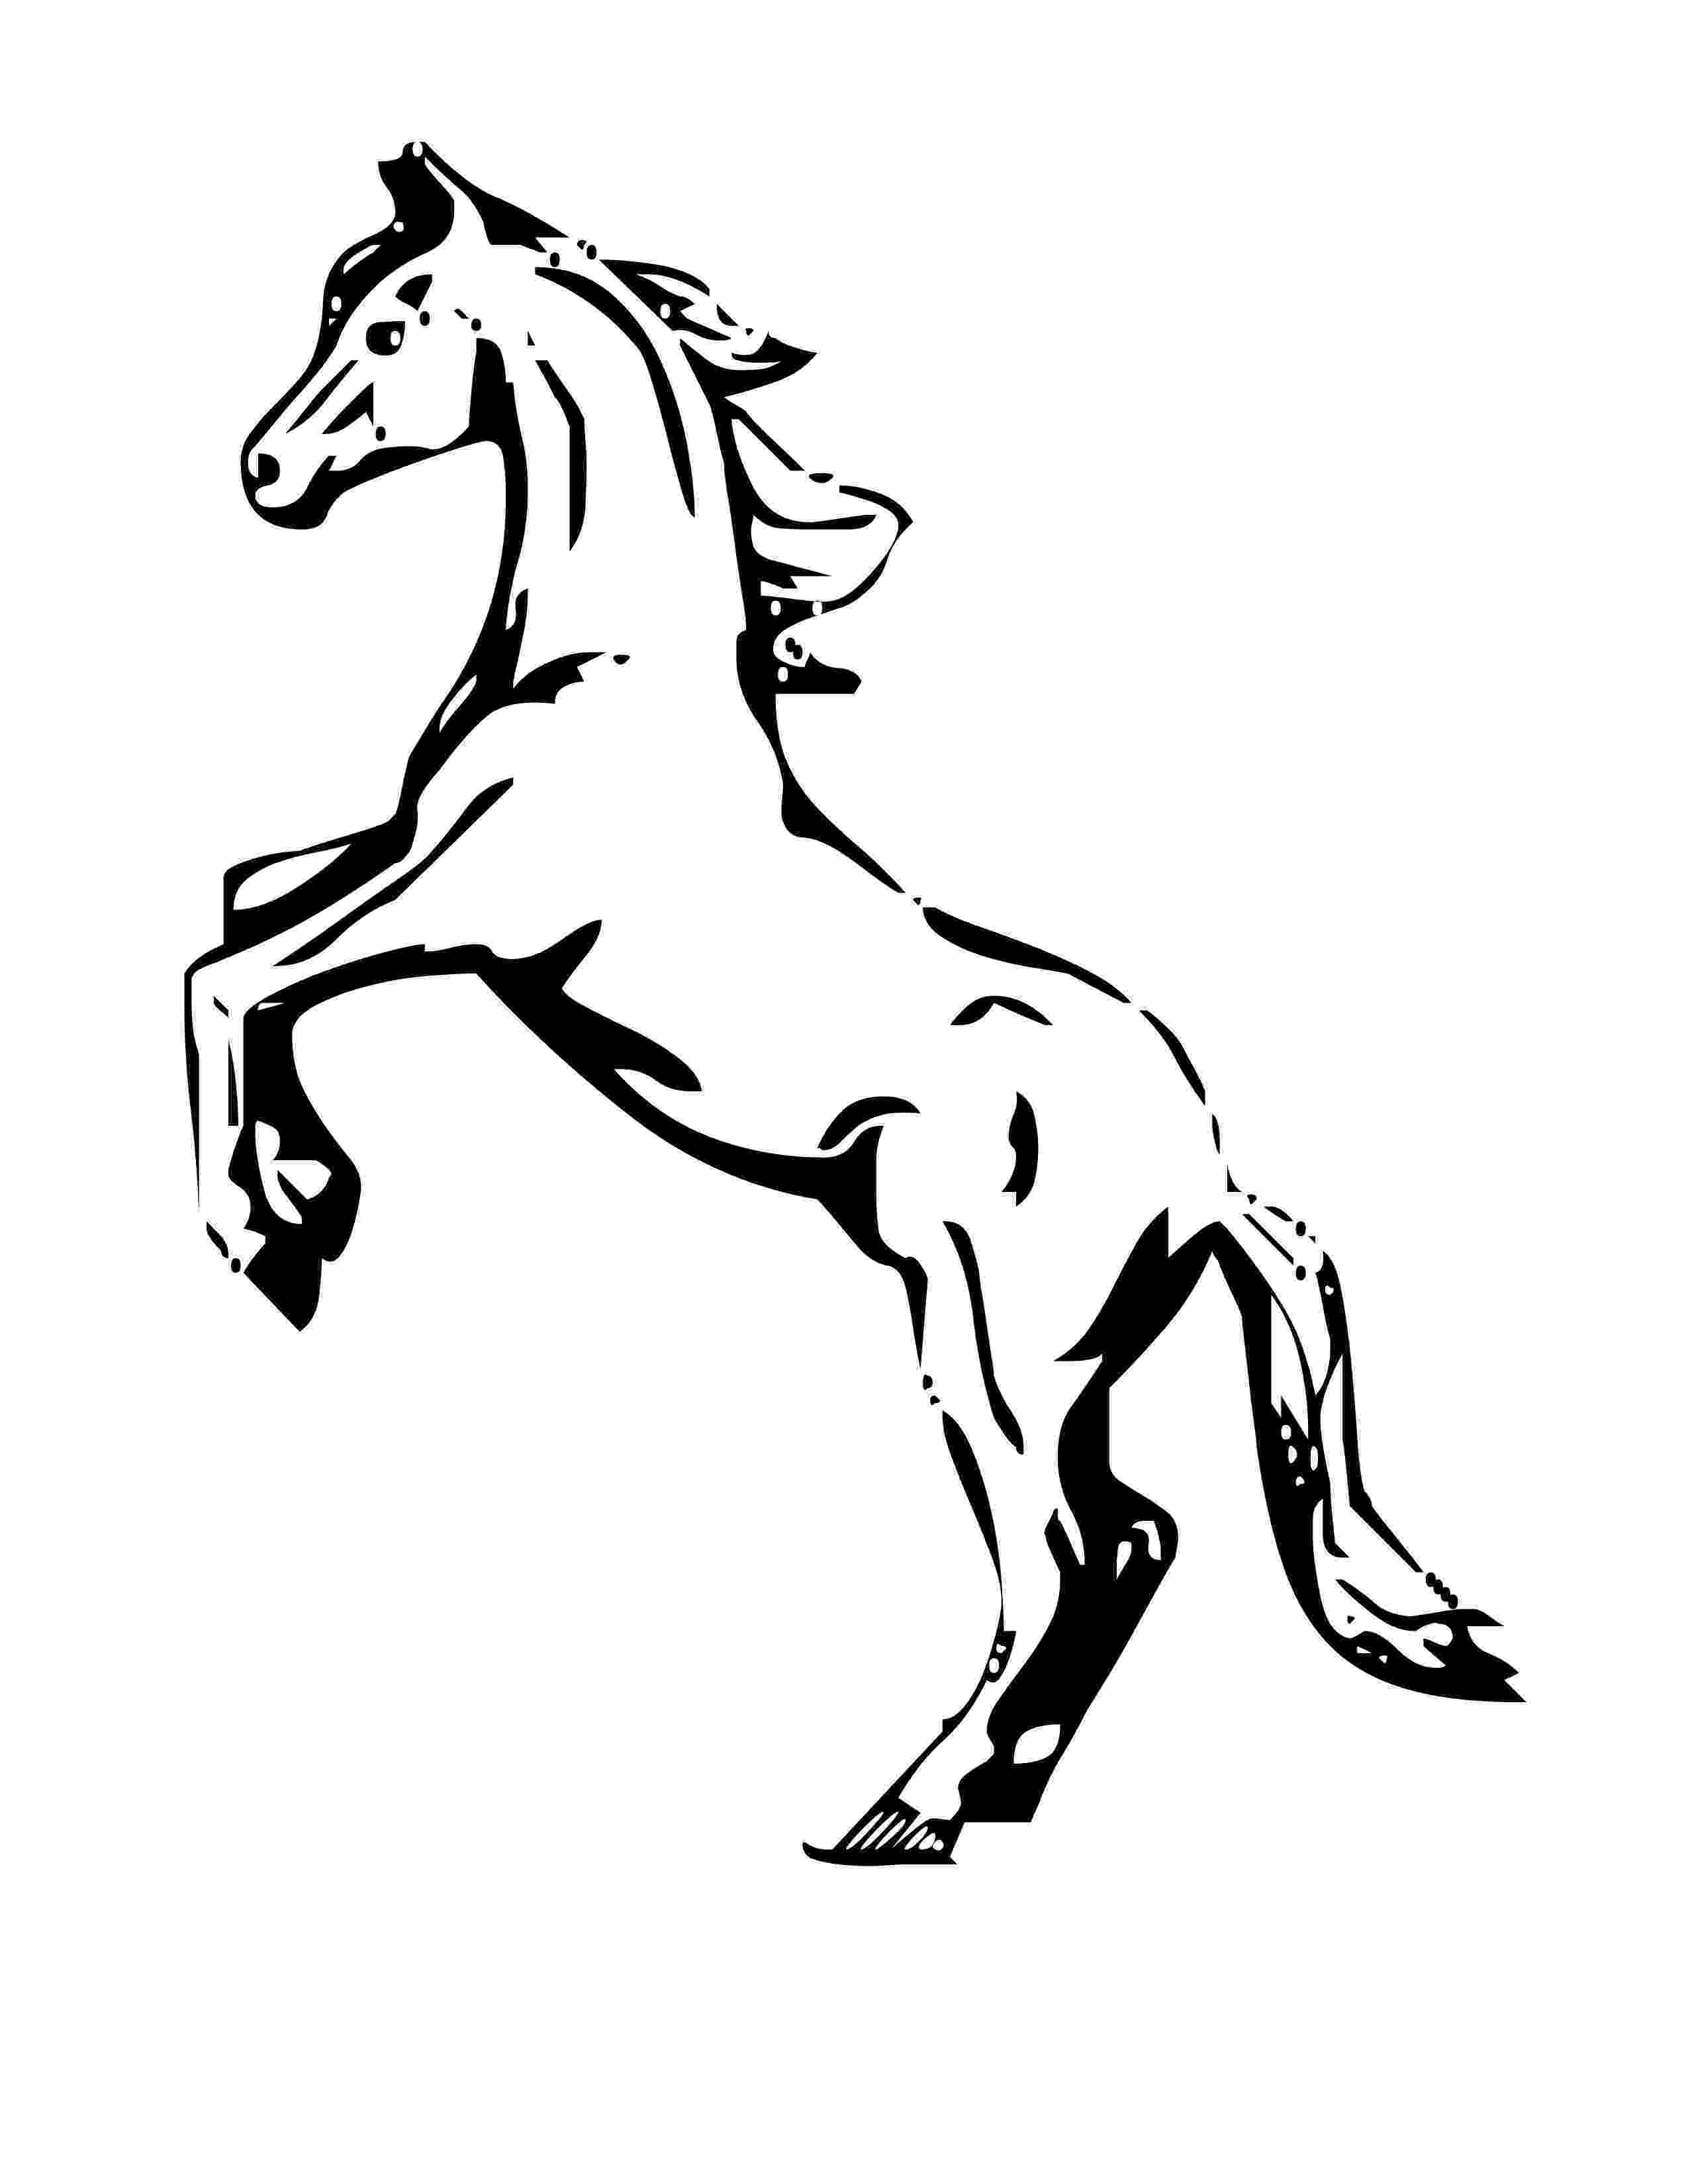 coloring page horse horse to print and color pages 2 color horse coloring horse coloring page